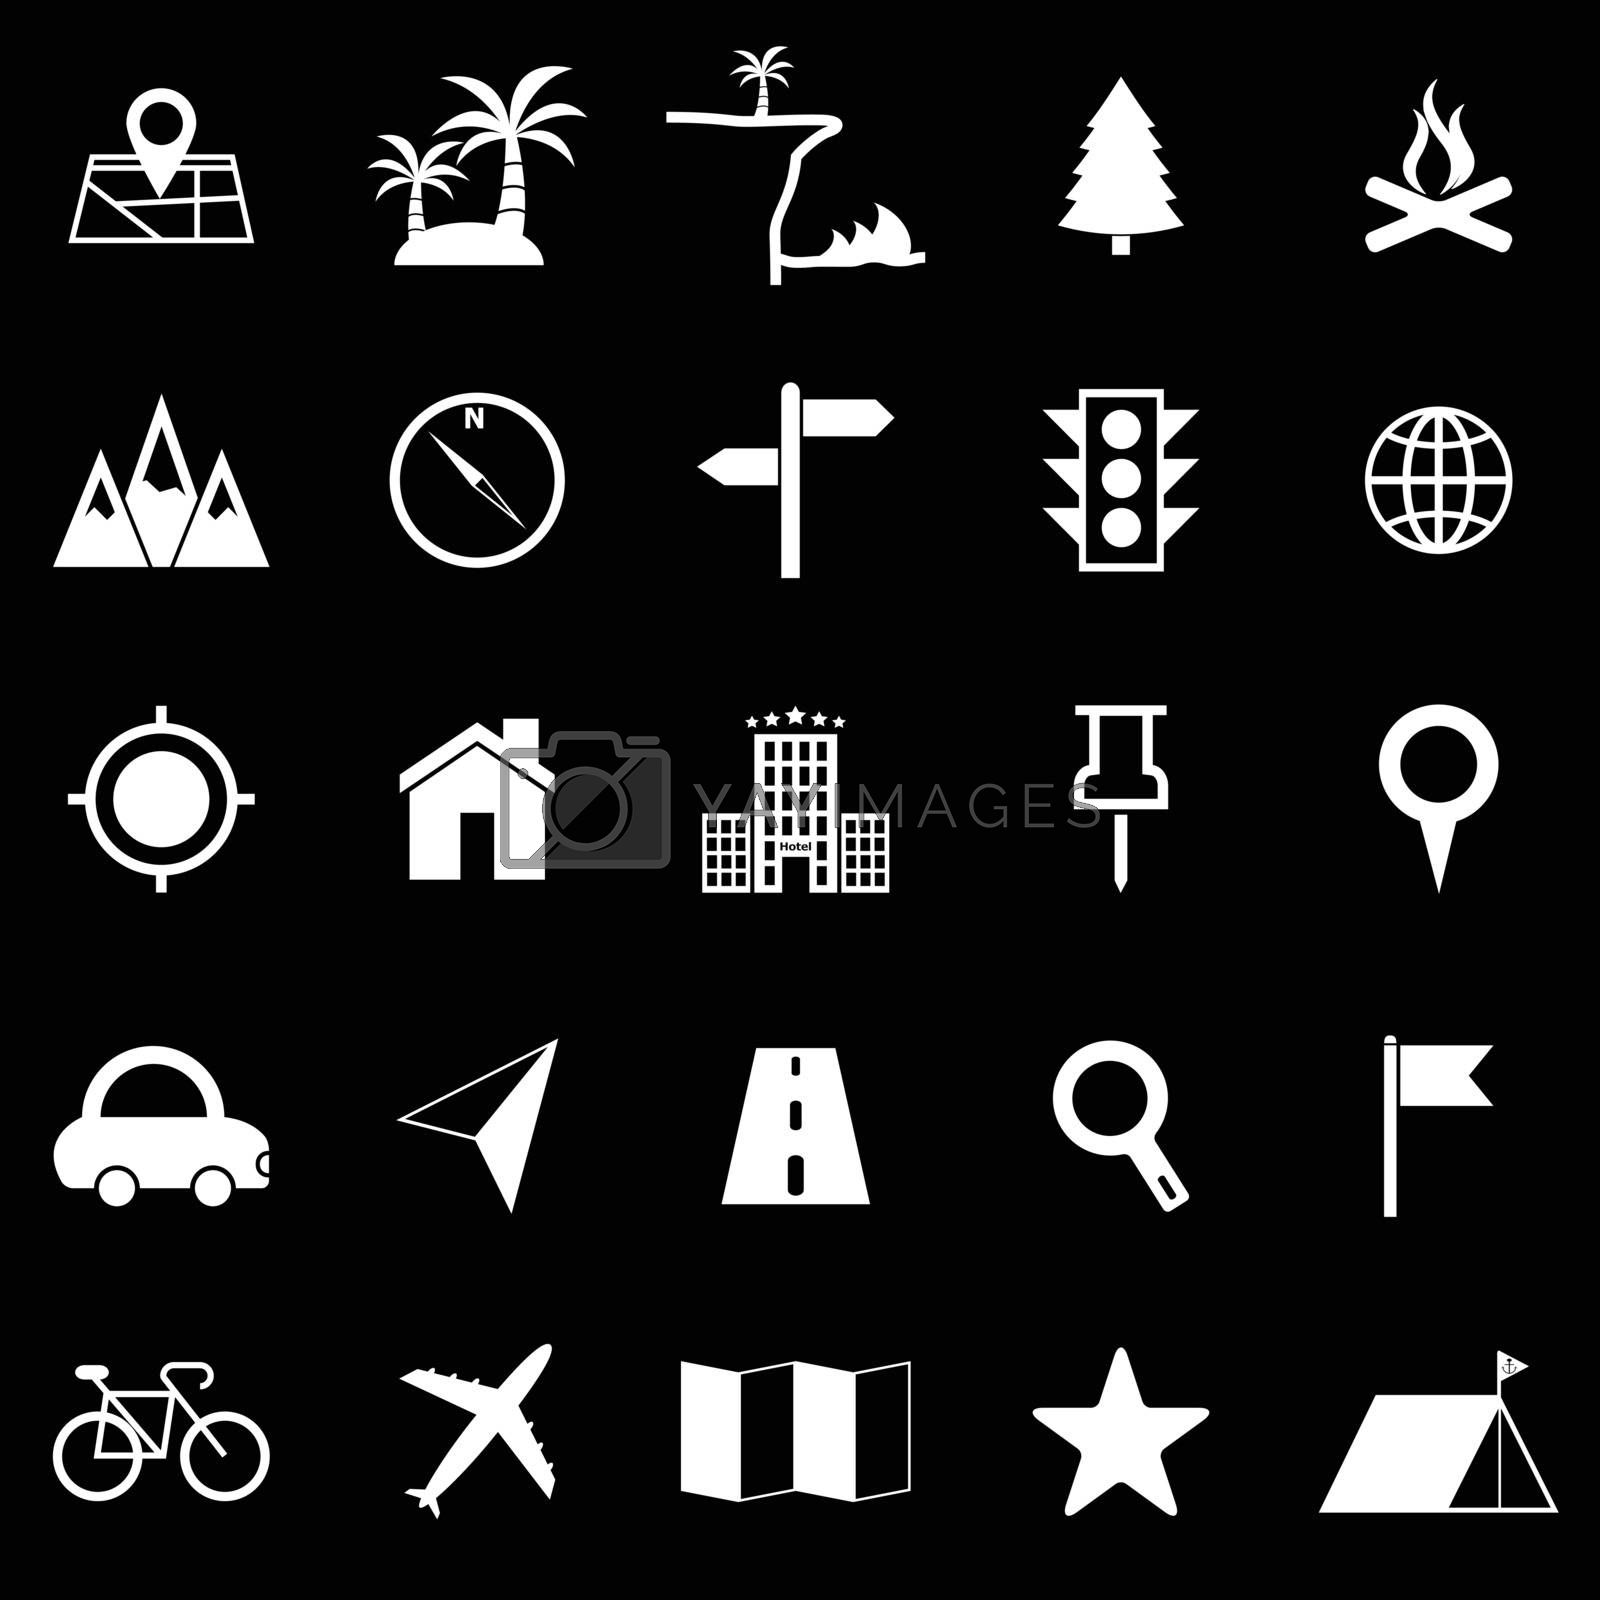 Location icons on black background, stock vector